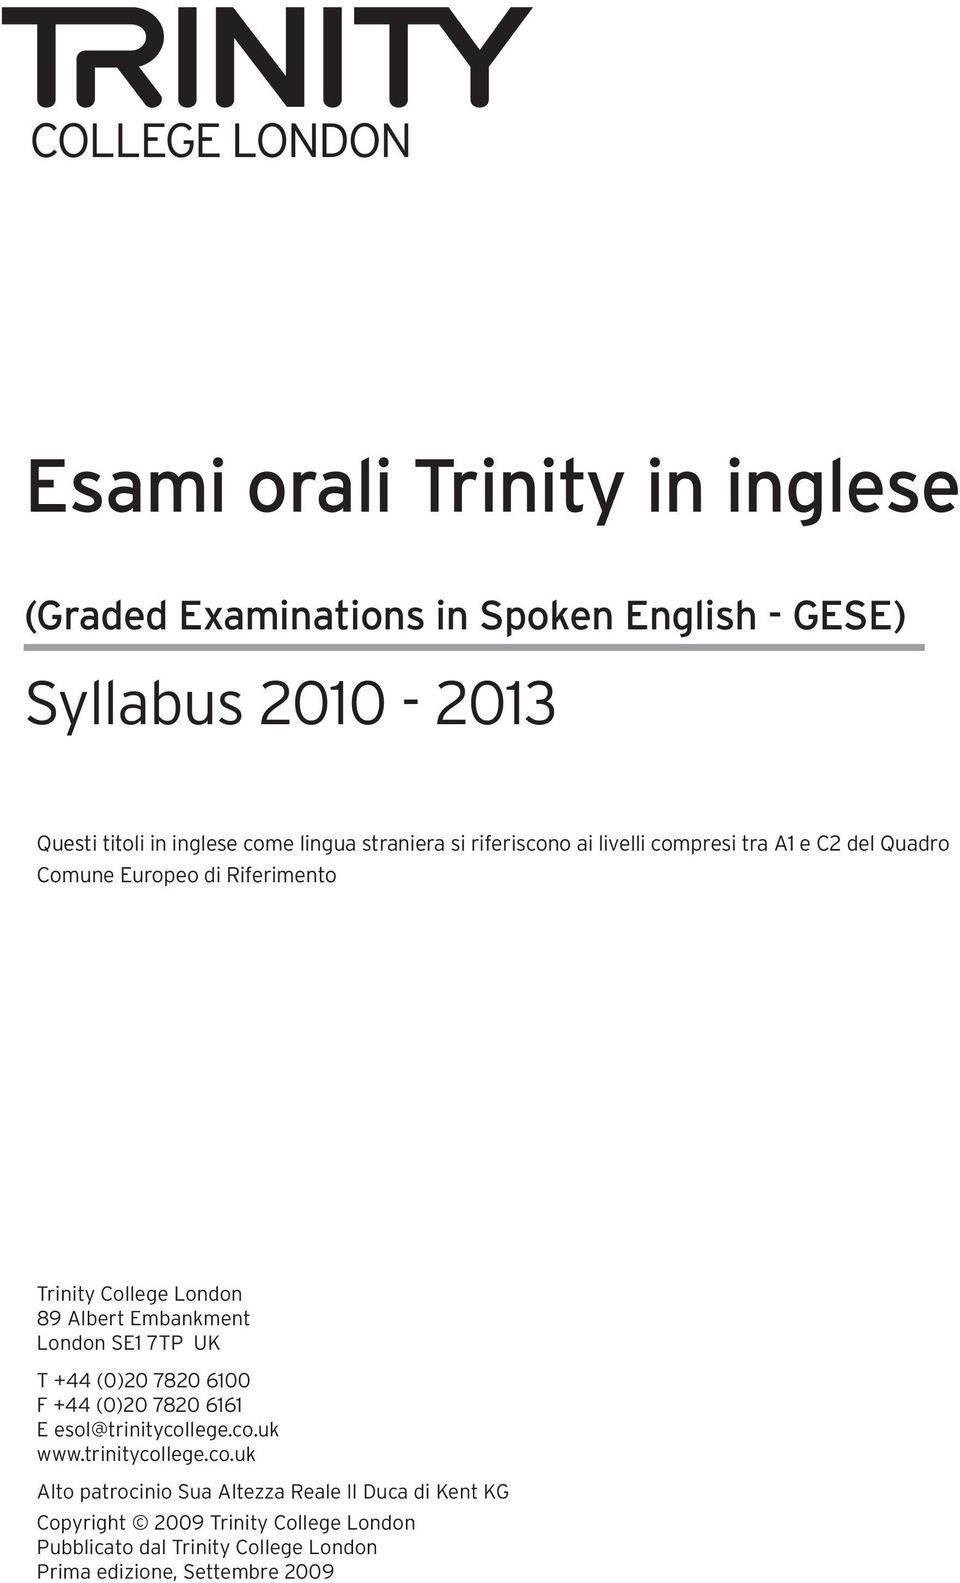 Embankment London SE1 7TP UK T +44 (0)20 7820 6100 F +44 (0)20 7820 6161 E esol@trinitycol